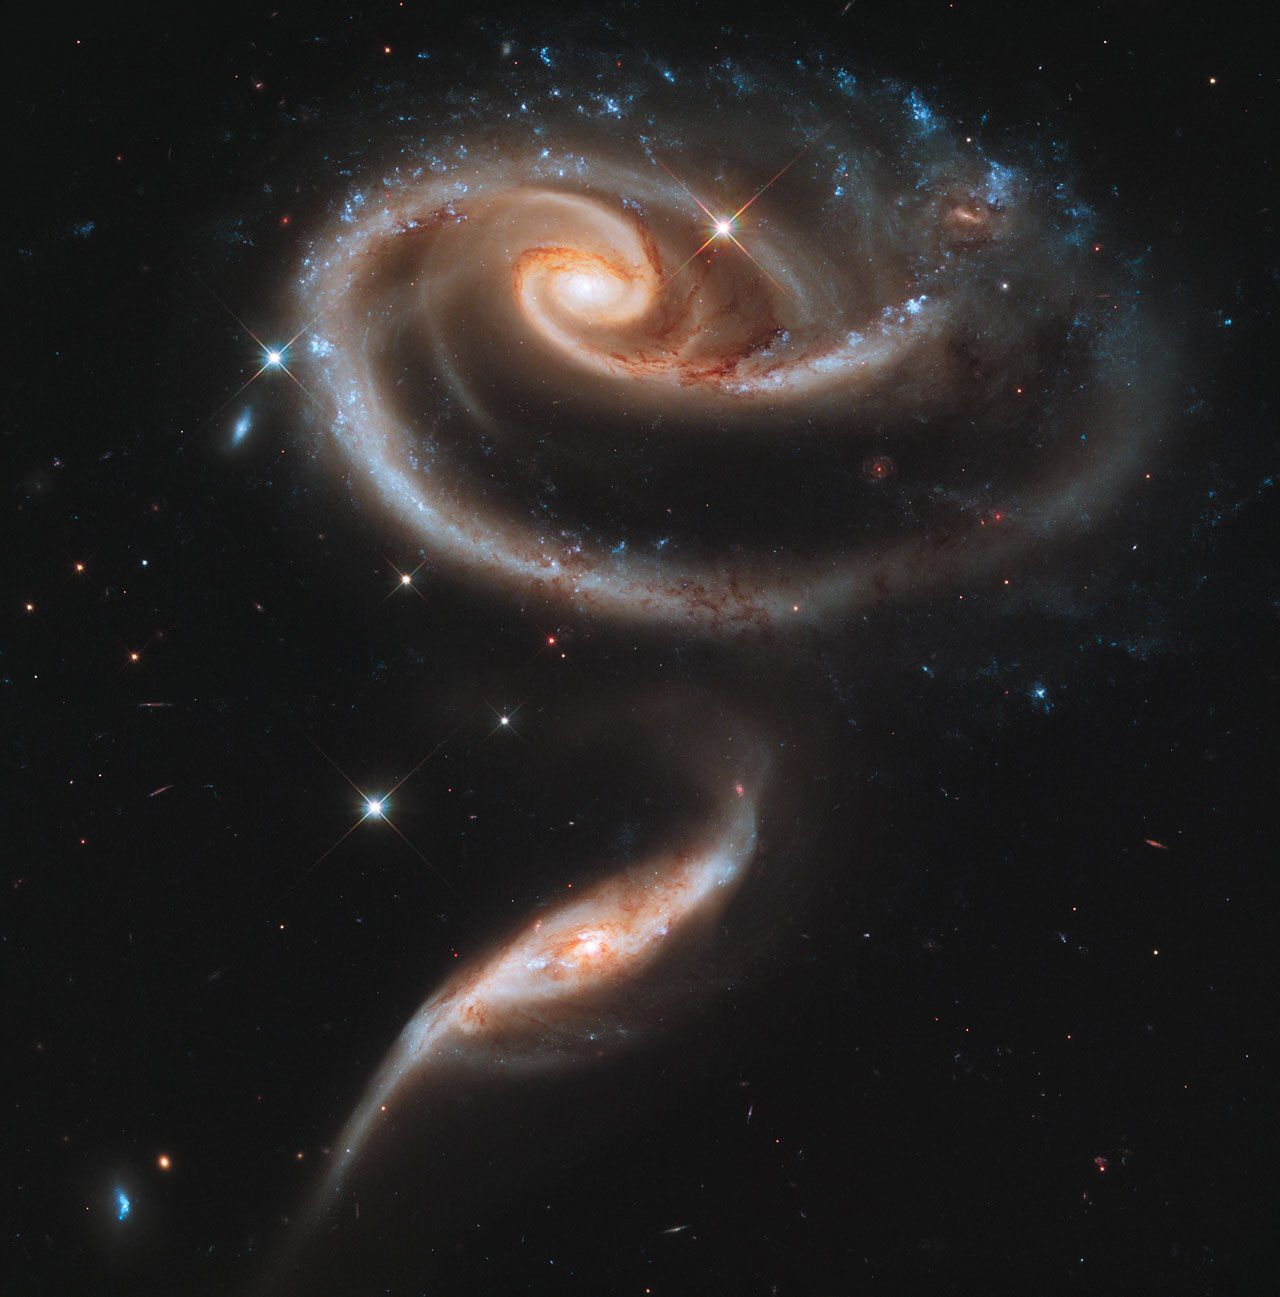 Systèmes de galaxies en interaction Arp 273 photo ESA/Hubble